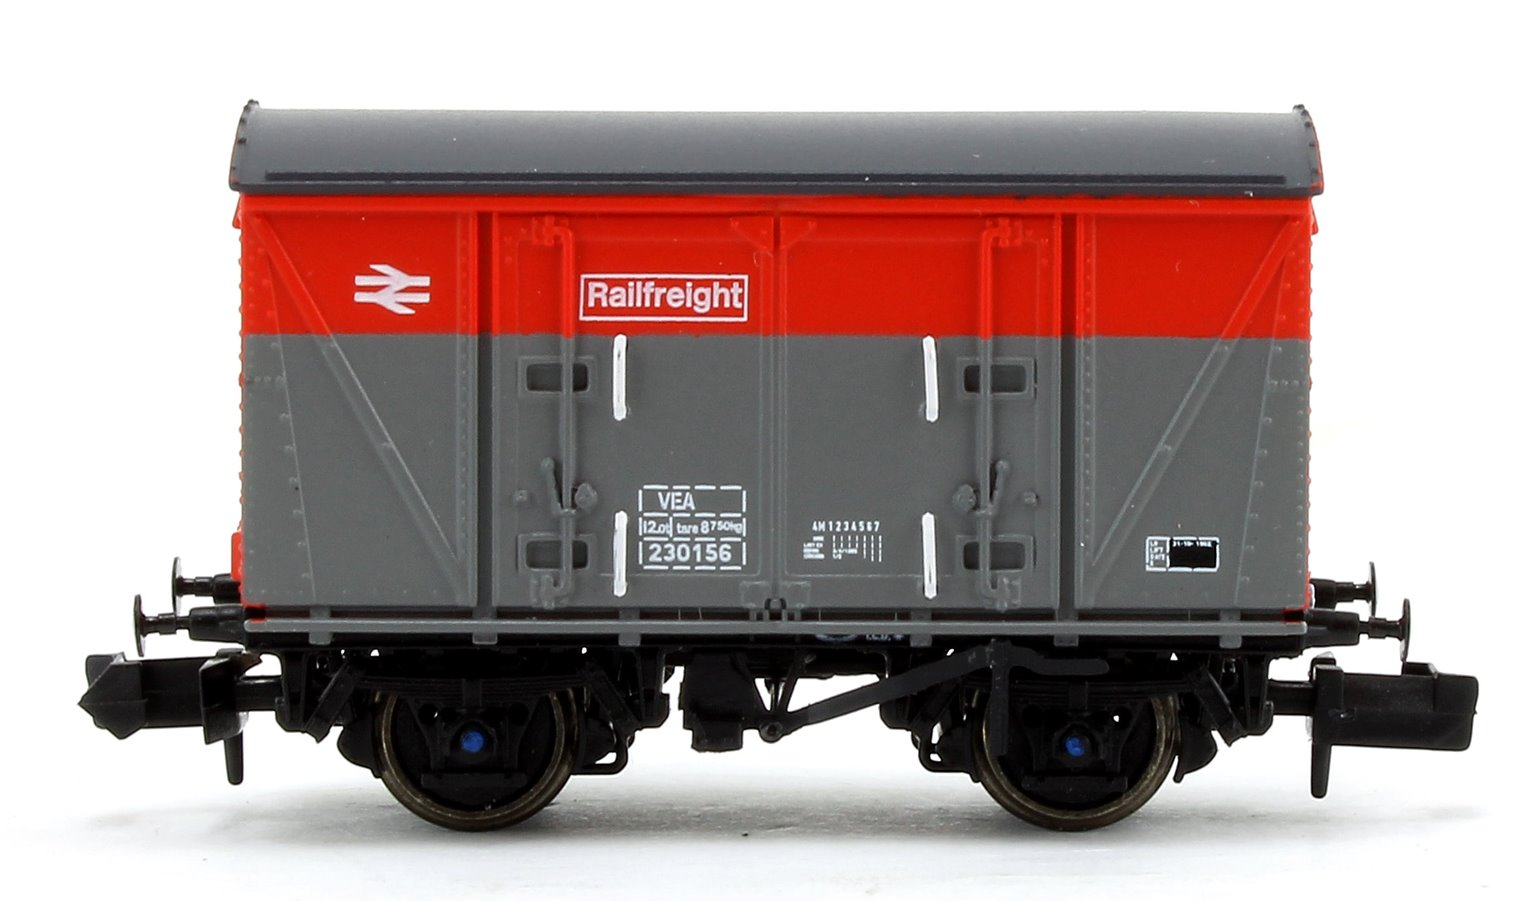 BR Railfreight Red/Grey (Pristine) VEA Munitions Van #230156